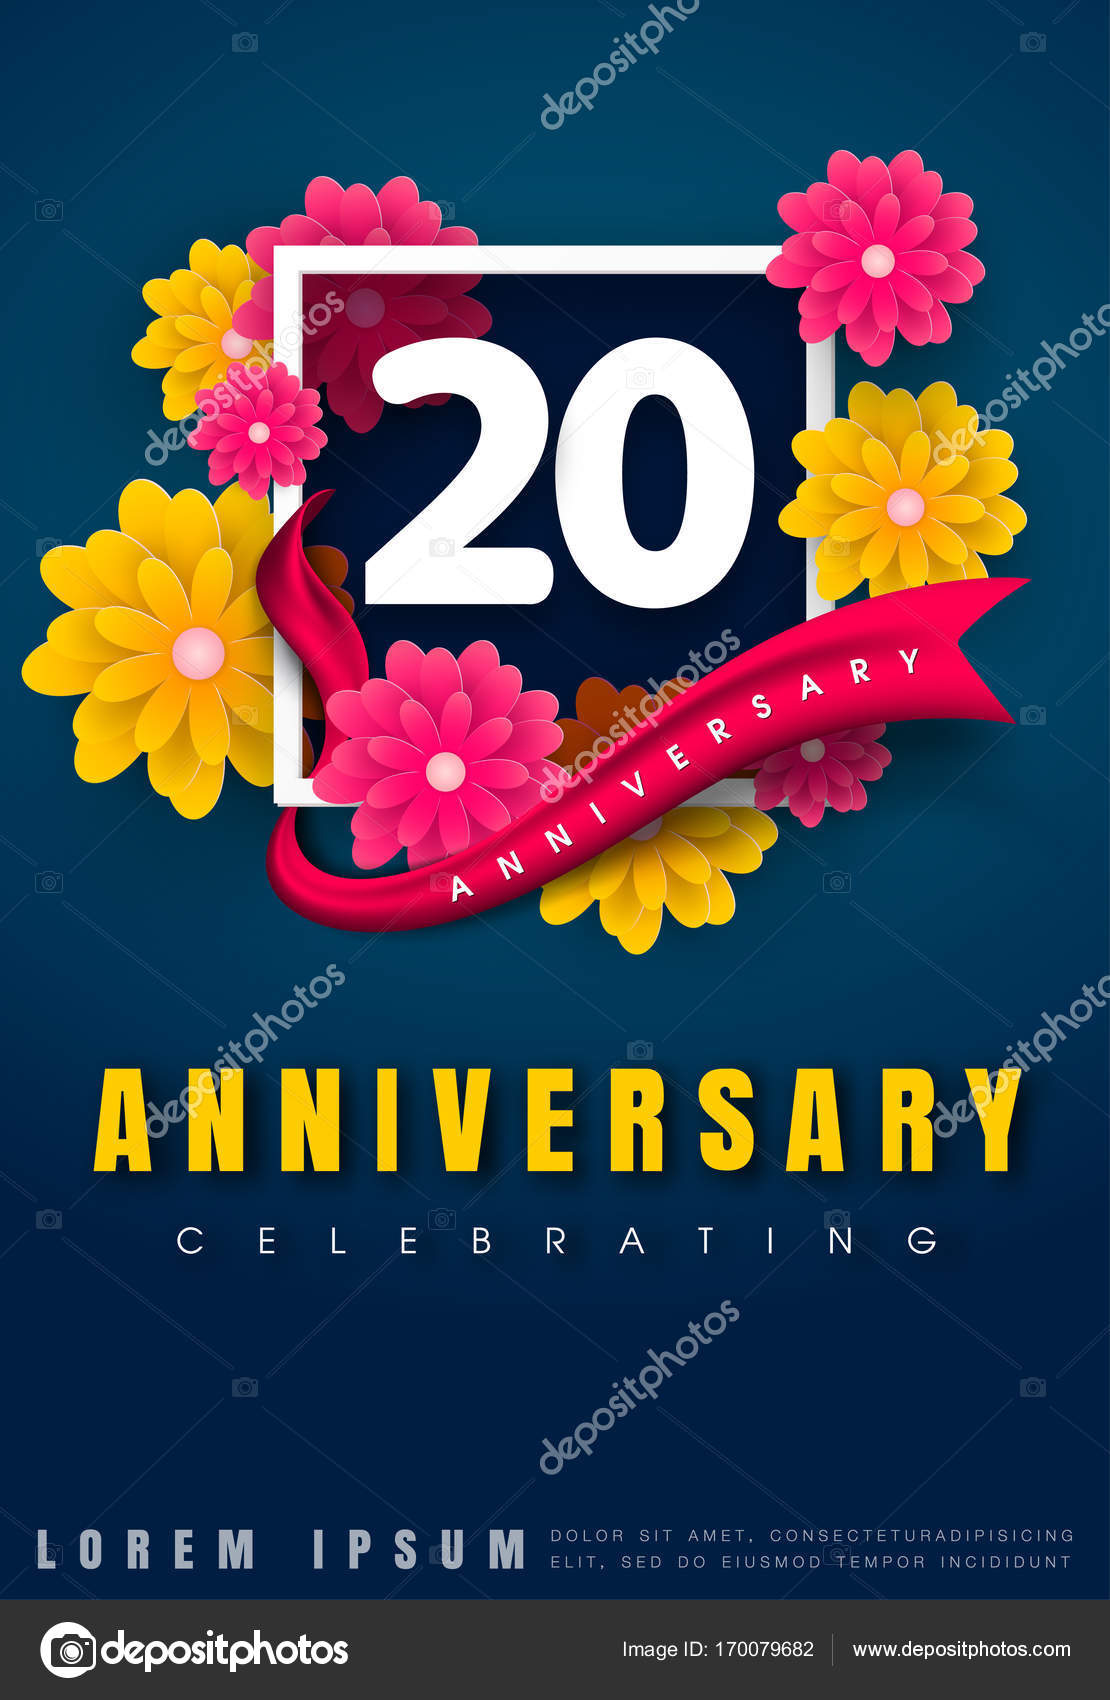 Anniversary invitation card template design vetor de stock 20 years anniversary invitation card celebration template design 20th anniversary with flowers and modern design elements dark blue background vector stopboris Gallery